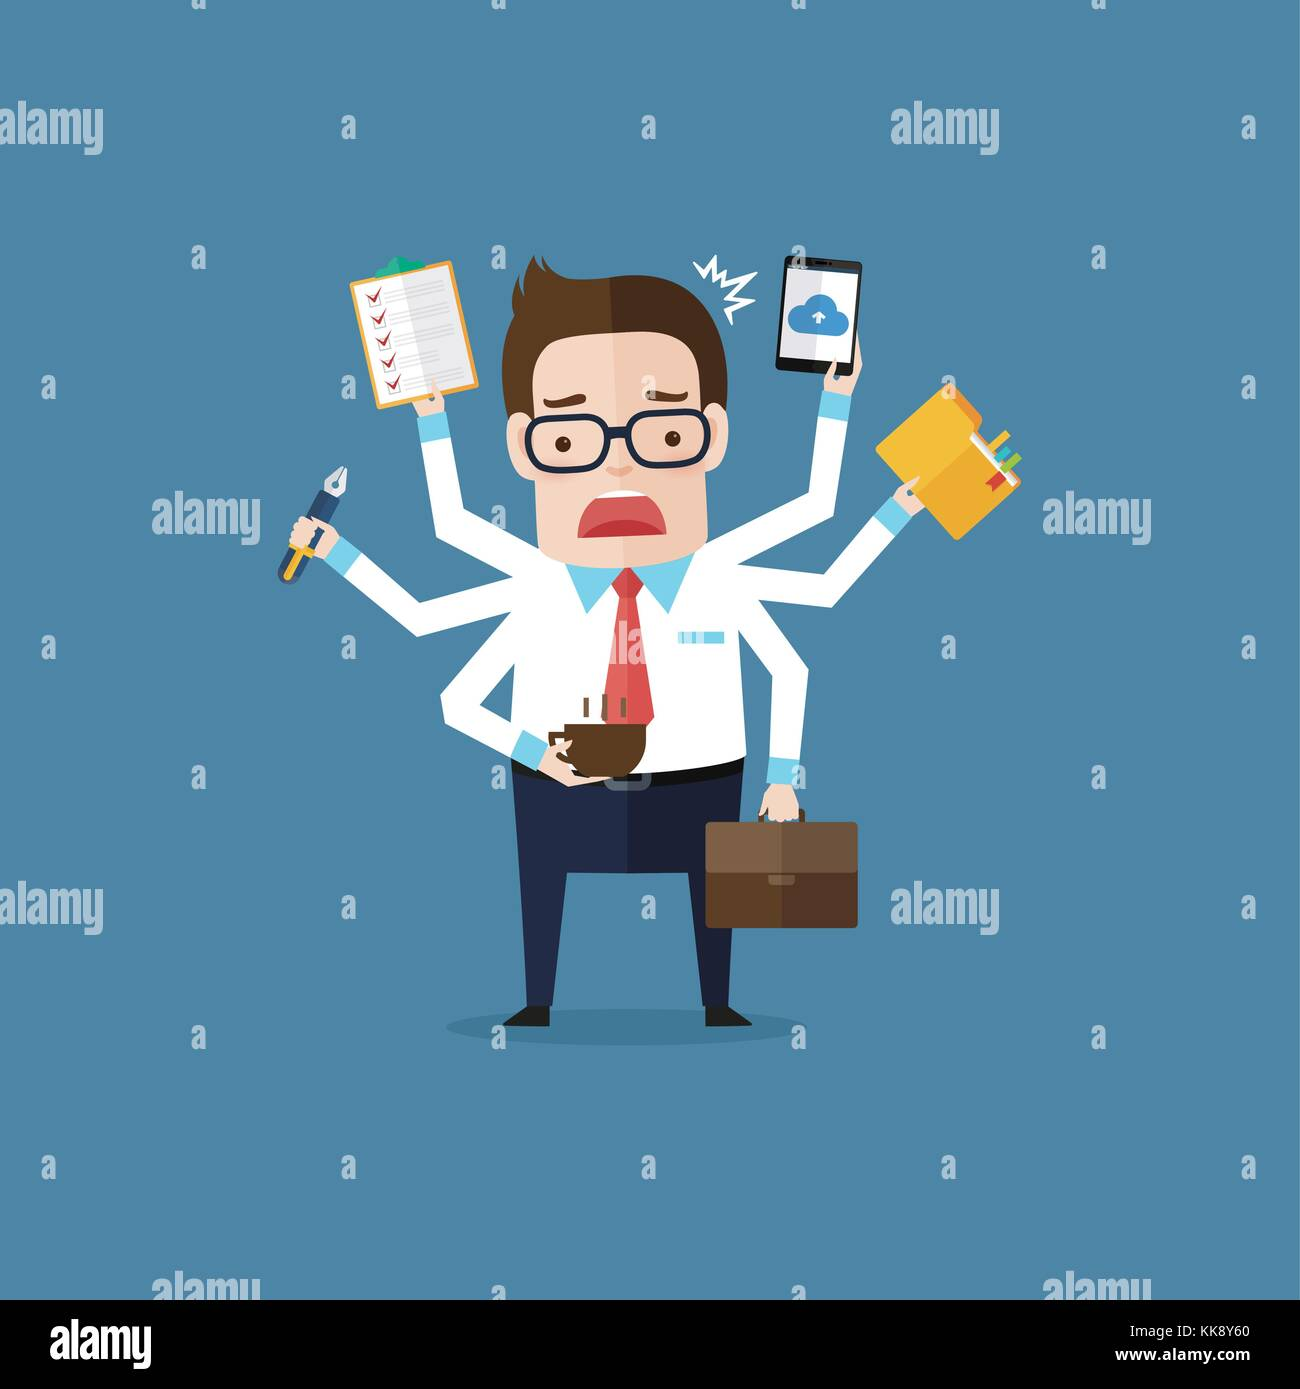 Business Man 22 - Stock Vector